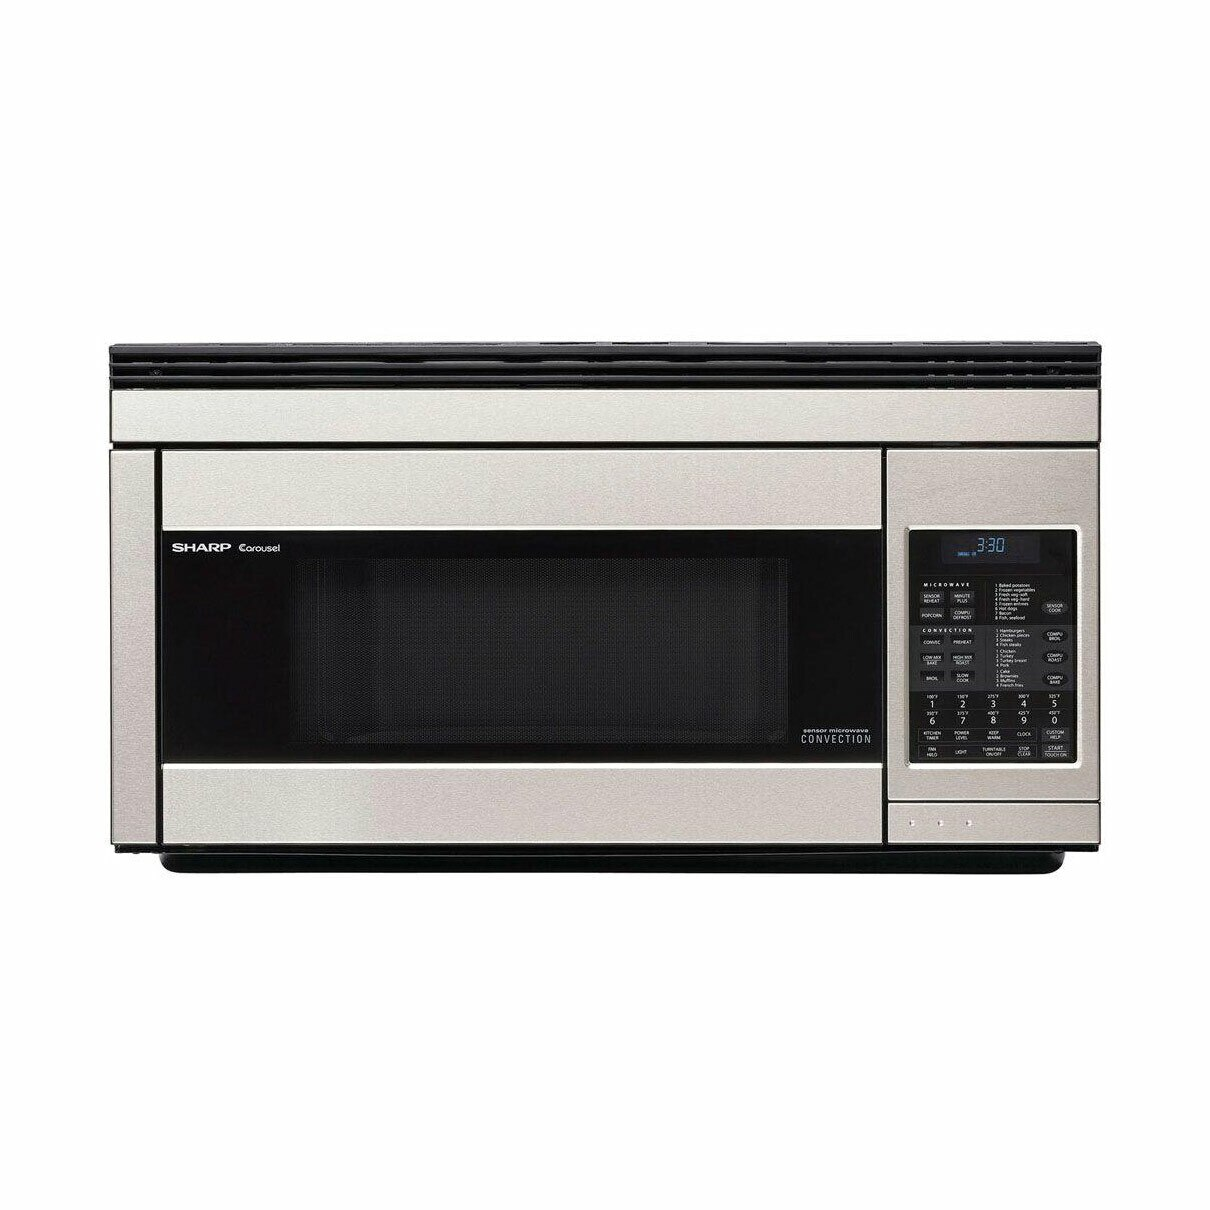 1.1 cu. ft. 850W Sharp Stainless Steel Over-the-Range Convection Microwave (R1874TY)